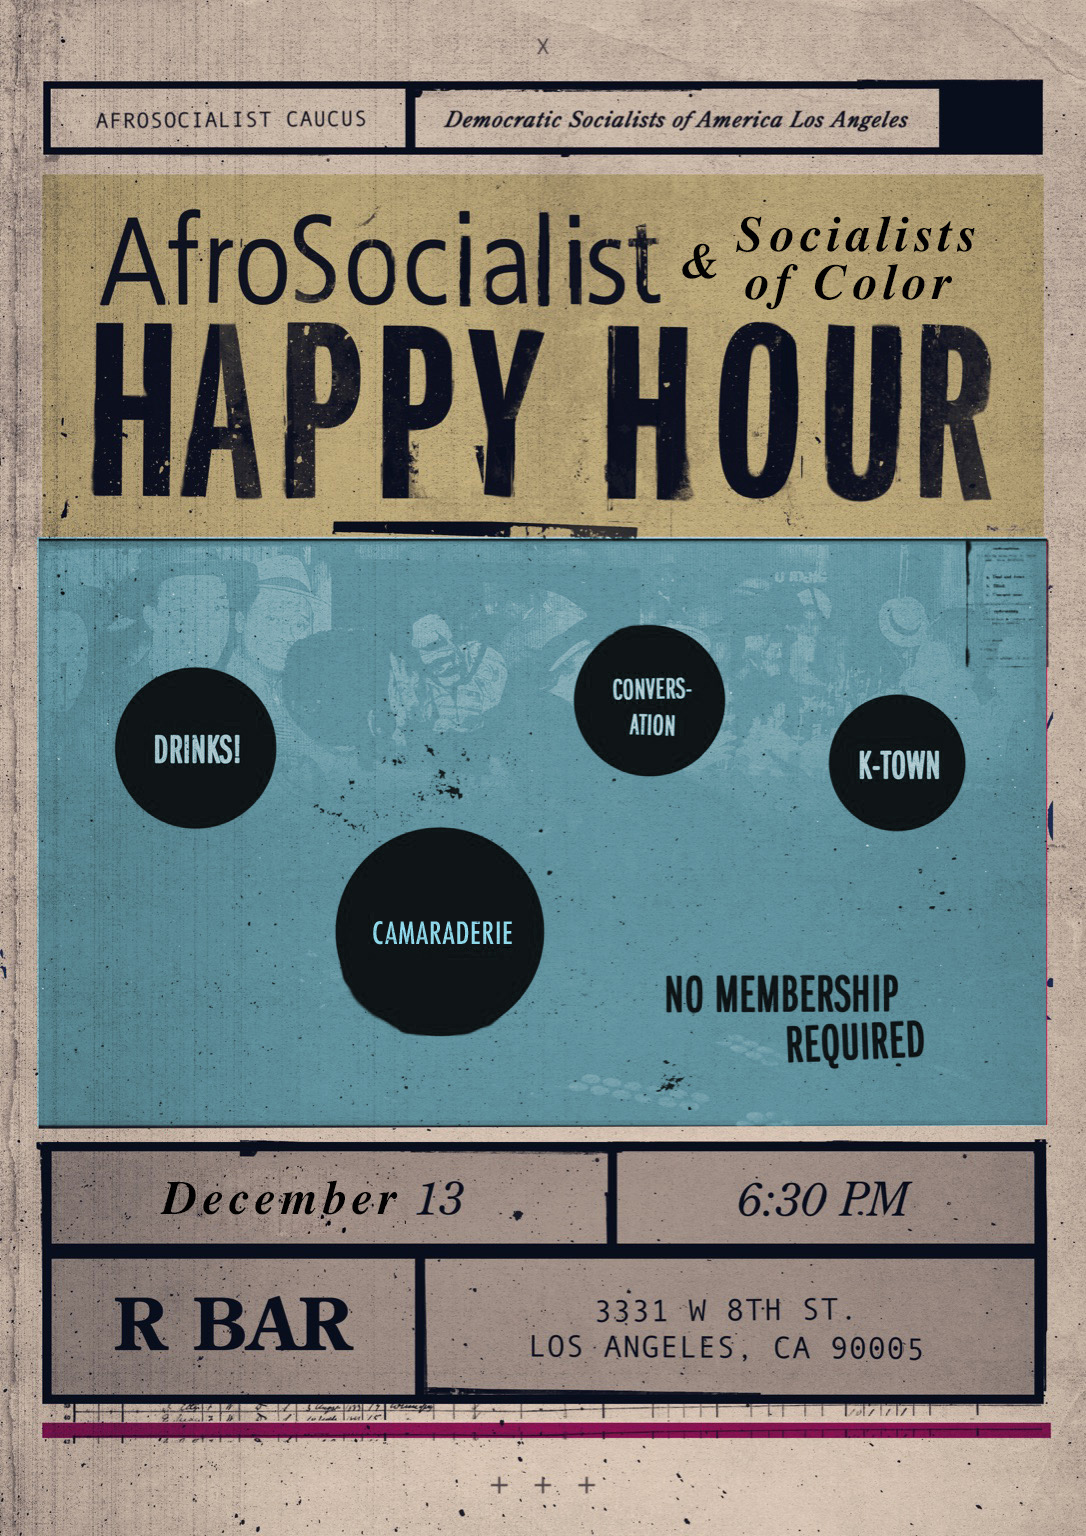 DSA-LA Afrosocialist & Socialists of Color December 13th Flyer